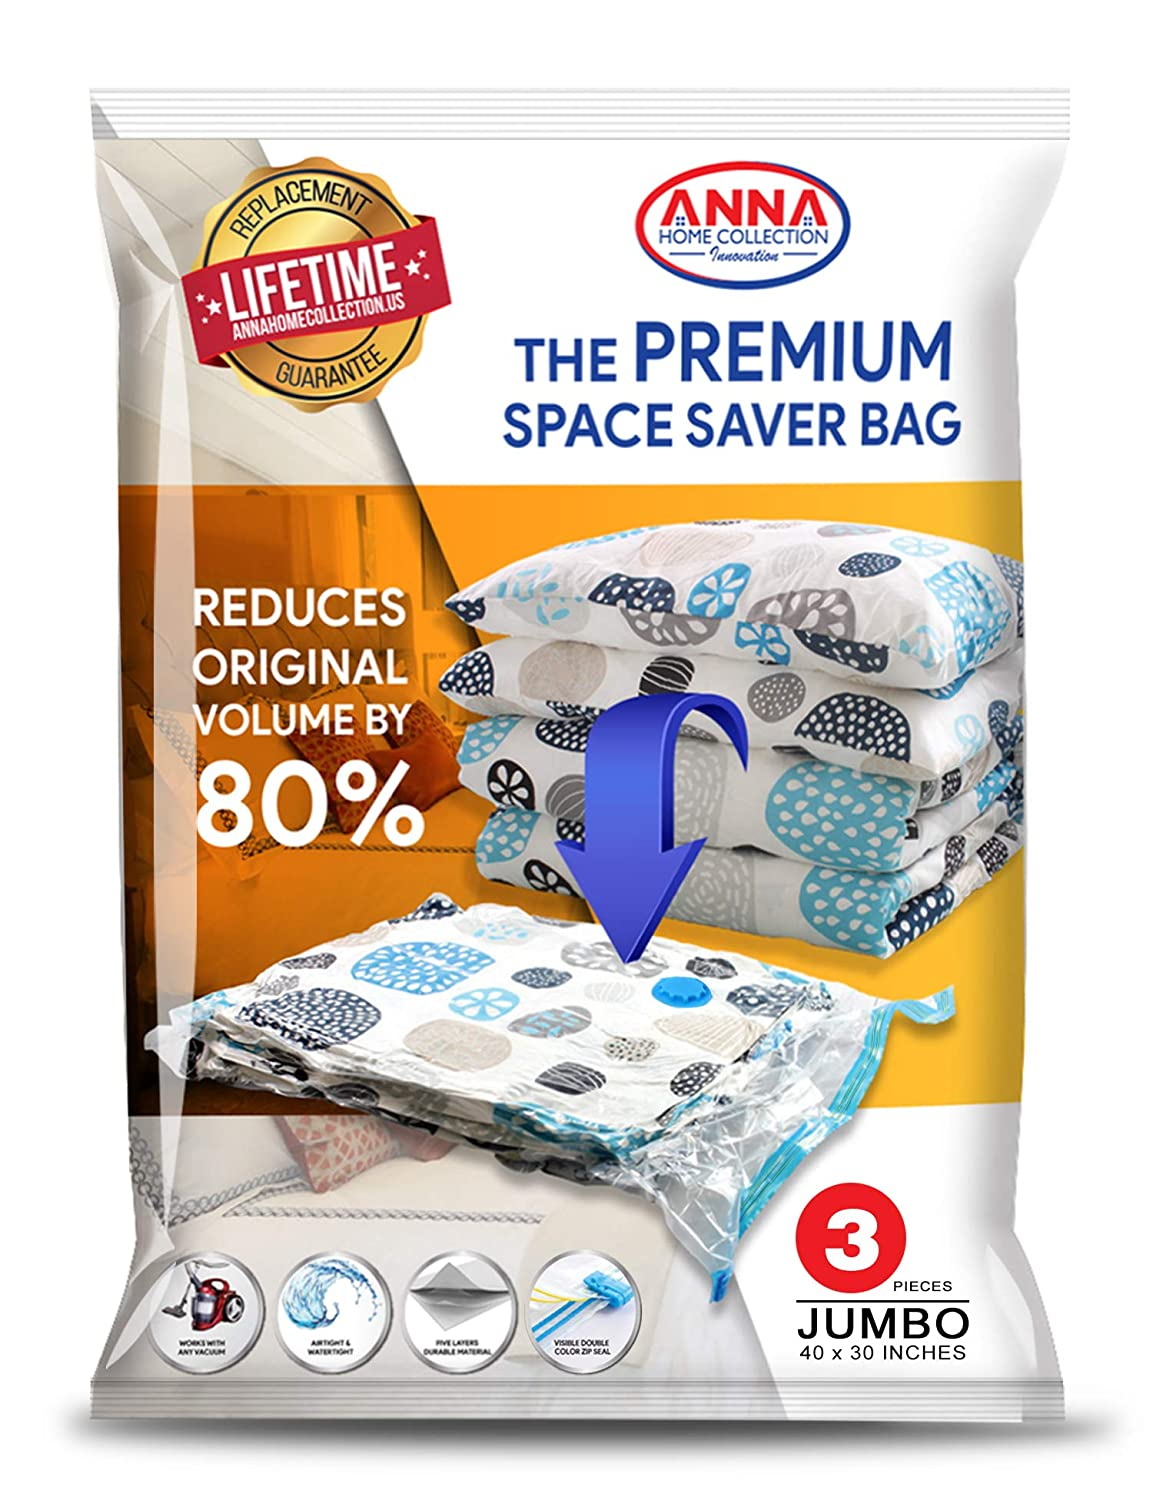 Anna Home Jumbo Vacuum Storage Bags (3 Jumbo) Space Saver Storage Bags. Durable and Reusable Vacuum Sealer Bags for Clothes Storage, Travel Hand Pump Included